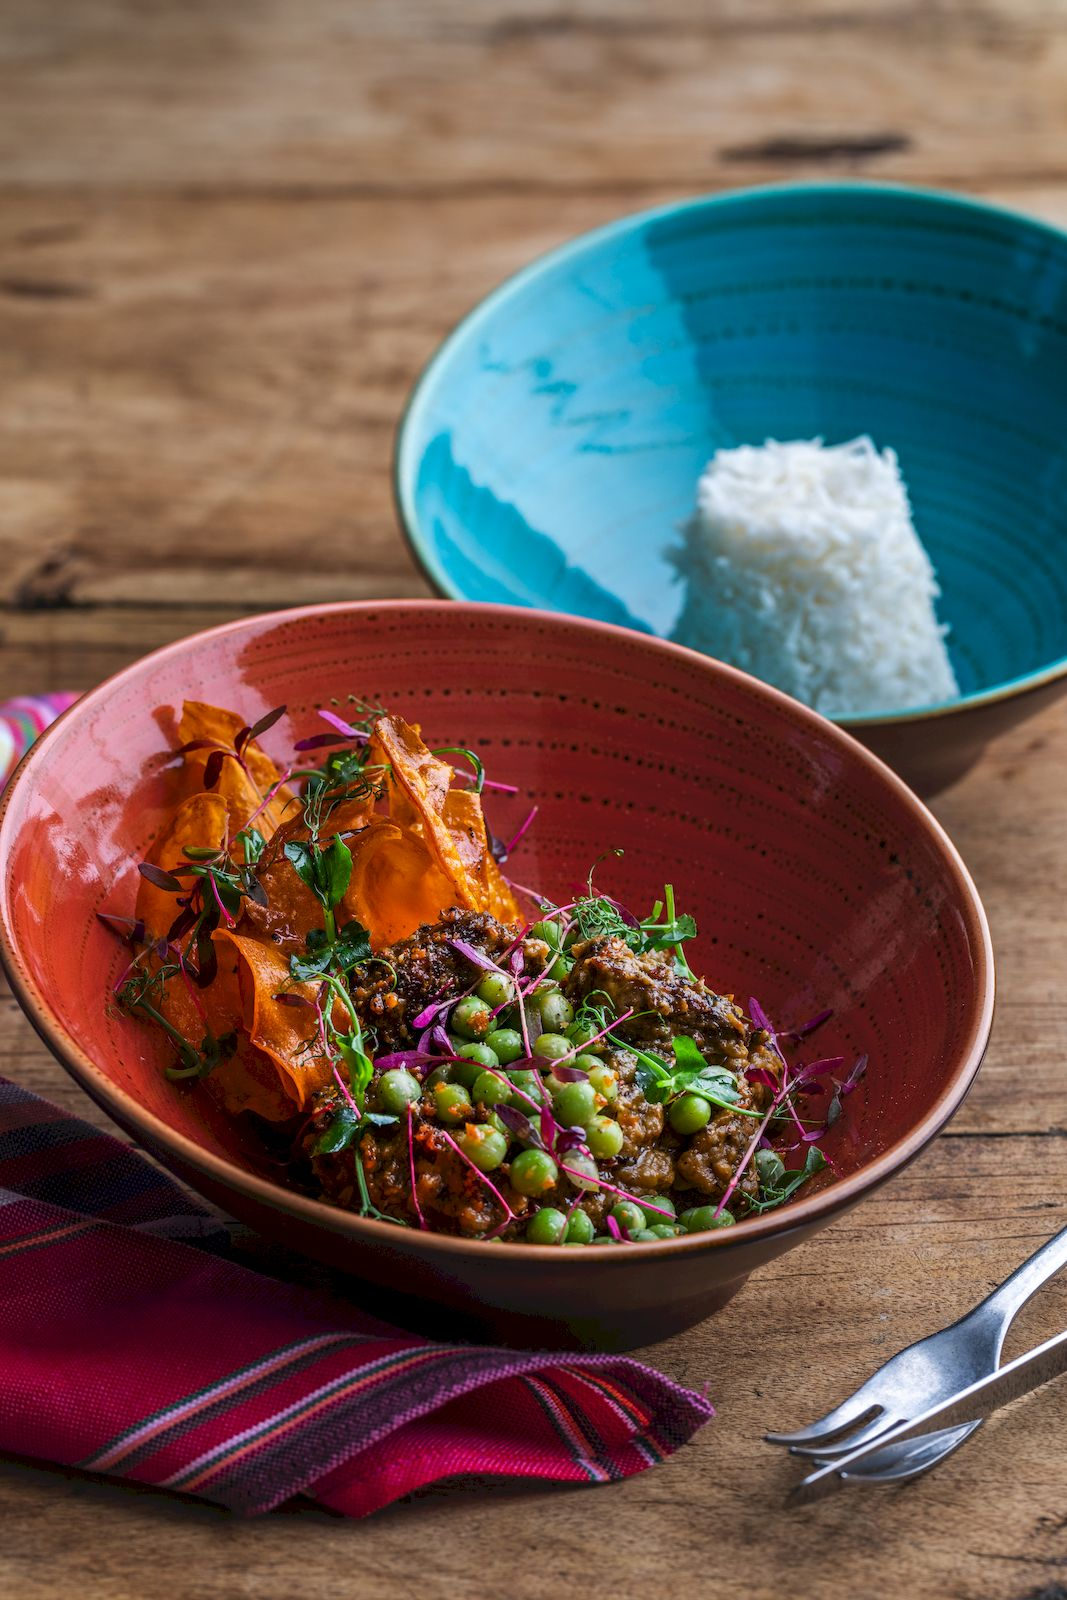 Take a culinary trip around the African continent with Kafe UTU